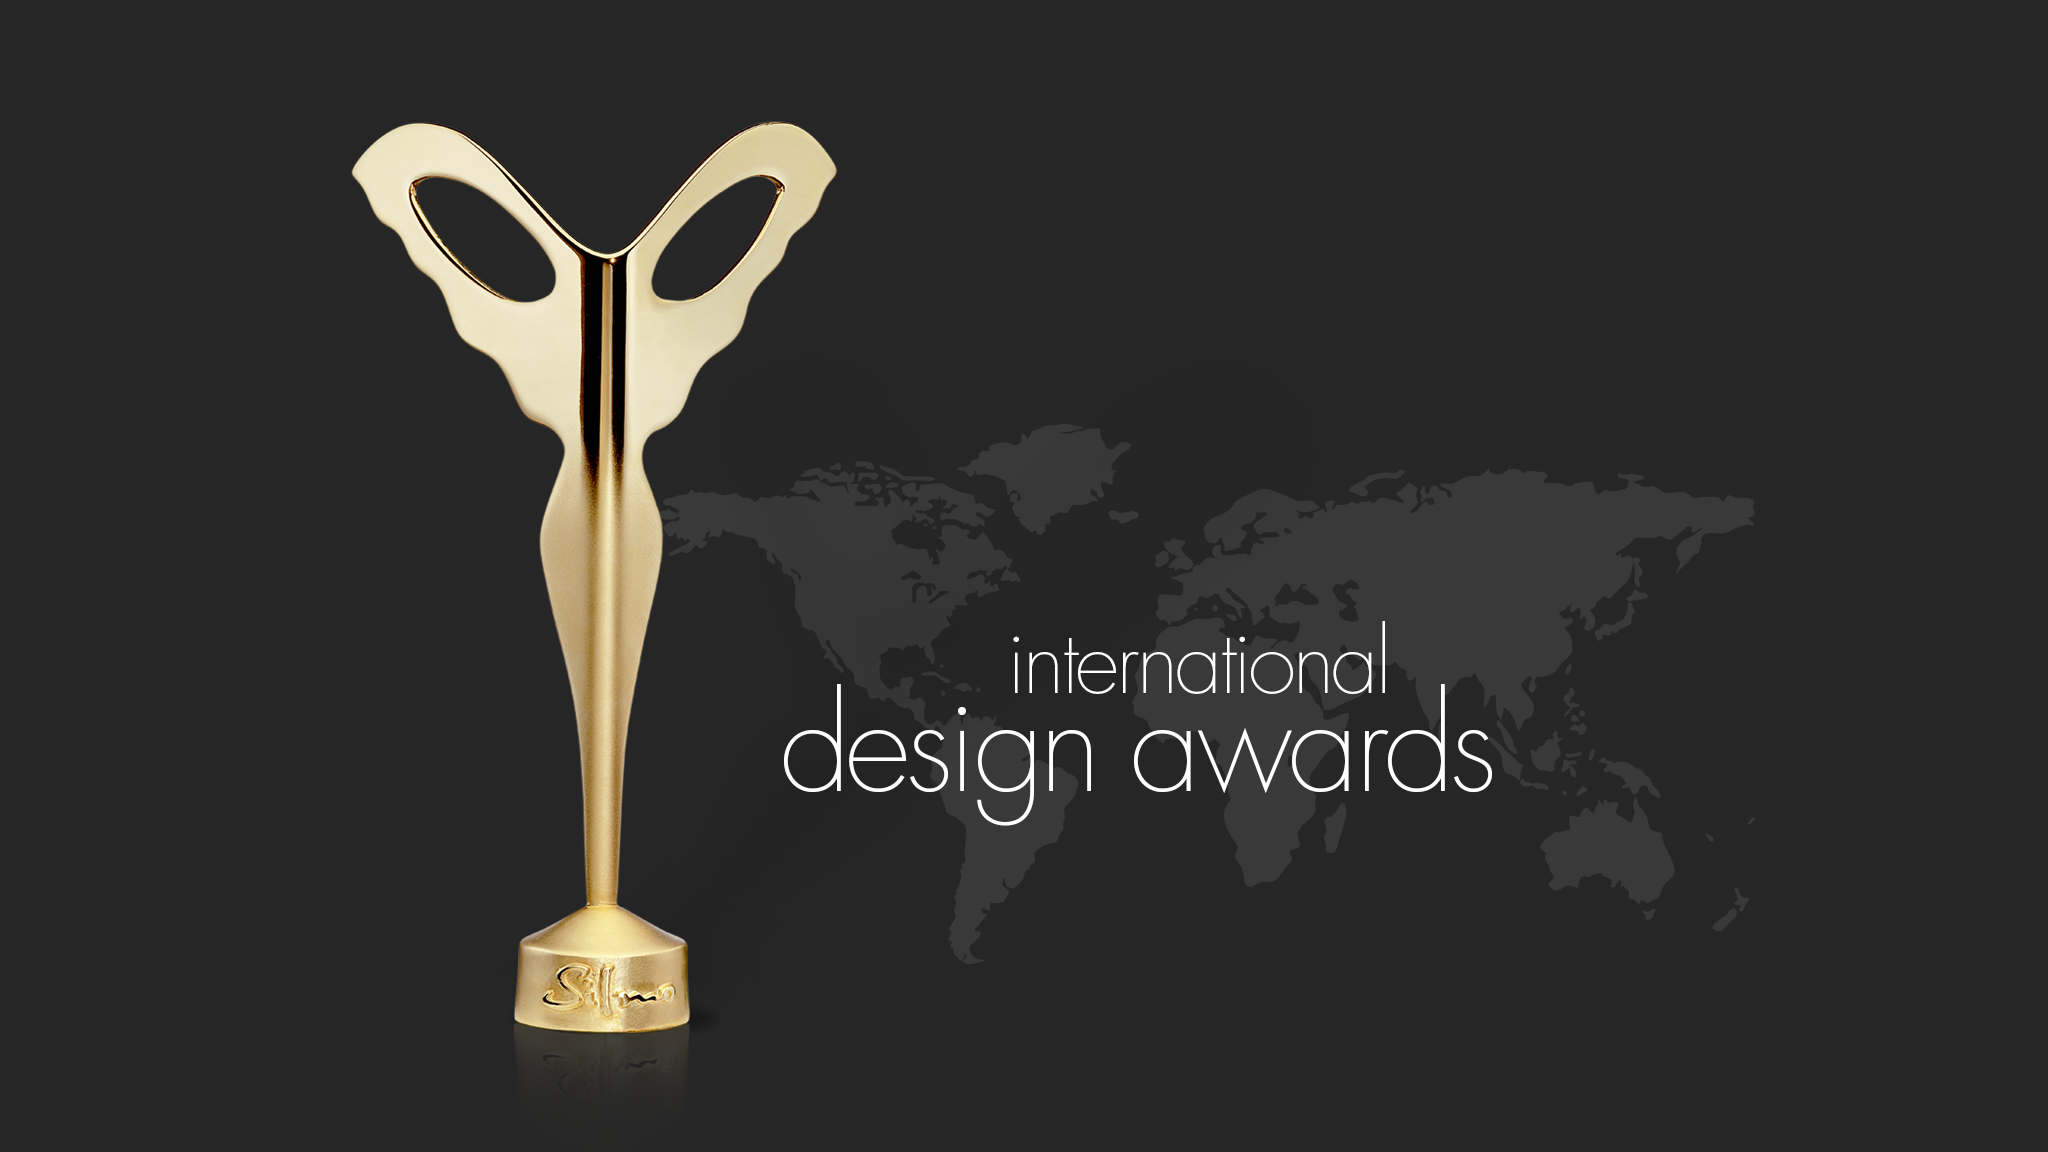 105 international design awards